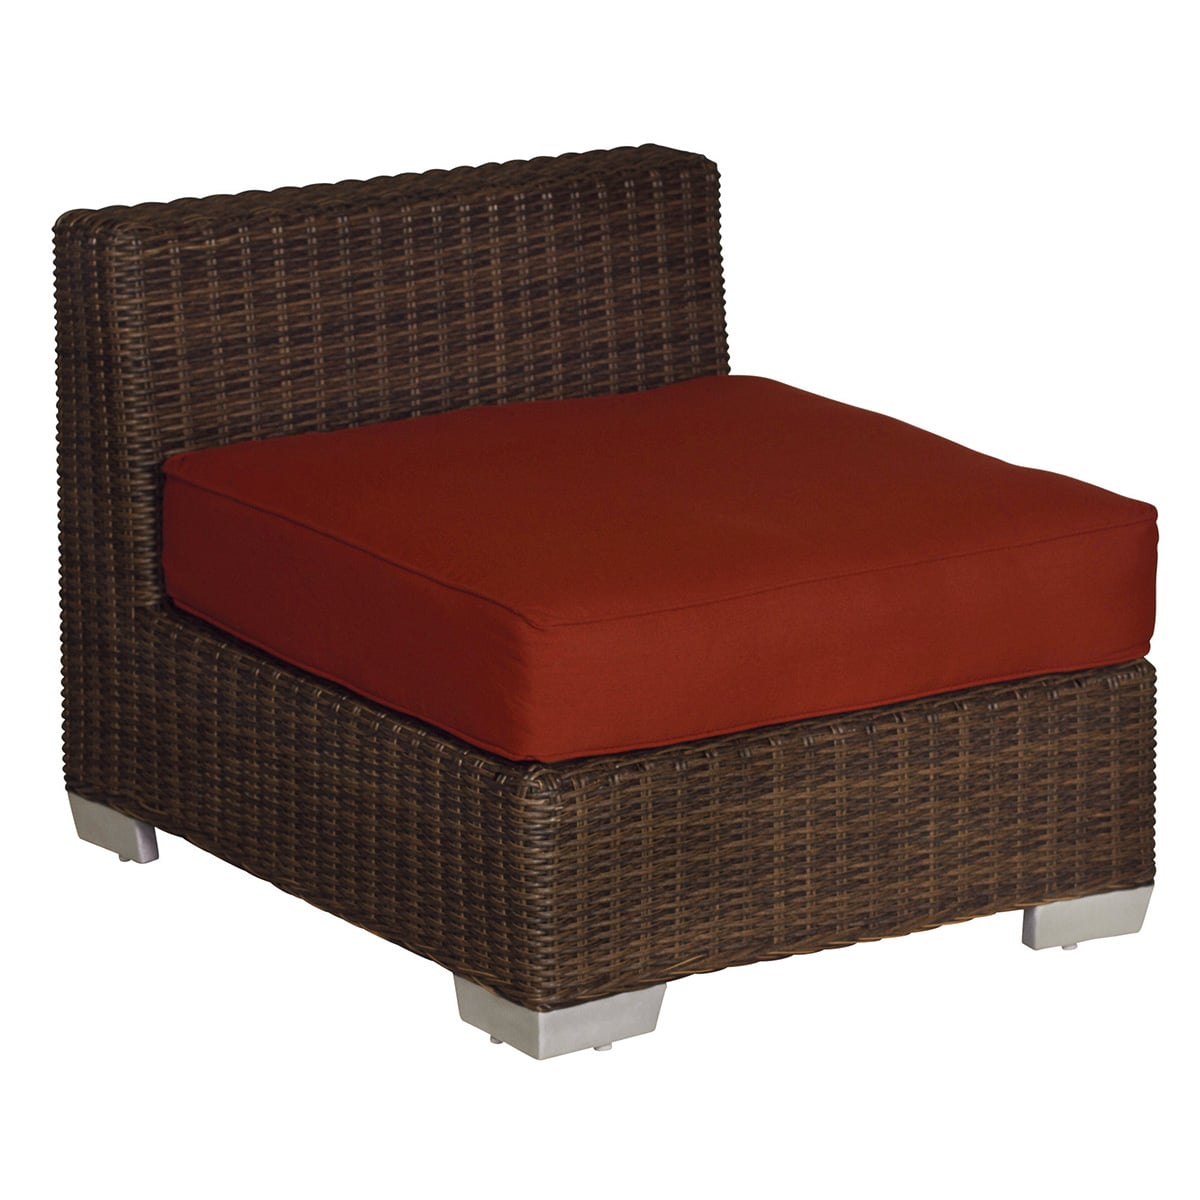 Malibu Deep Seating Sectional - North cape outdoor furniture